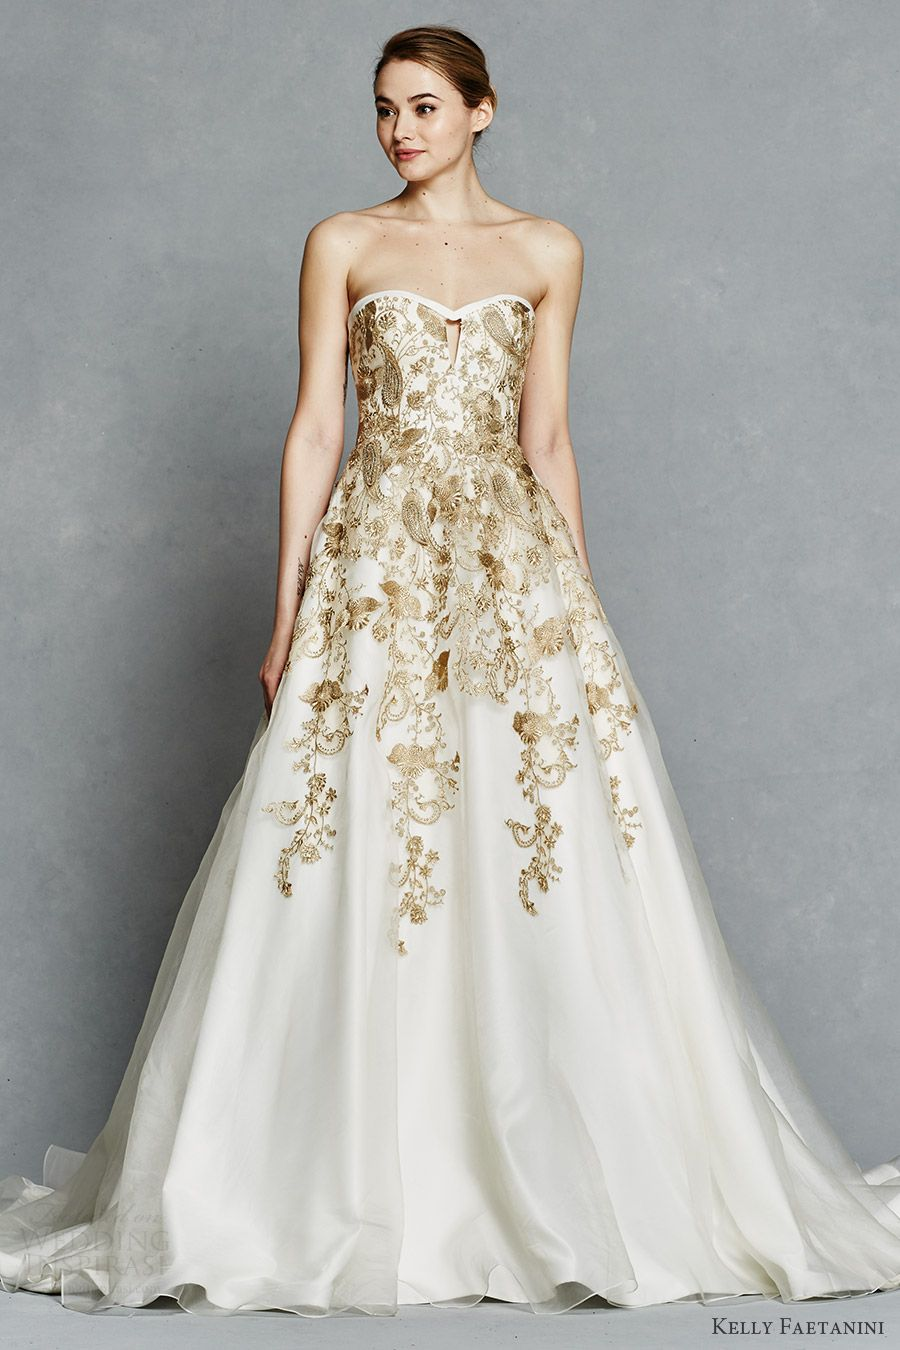 dfb2e2c35 kelly faetanini bridal spring 2017 strapless sweetheart ball gown wedding  dress (leona) mv gold color embroidery pockets